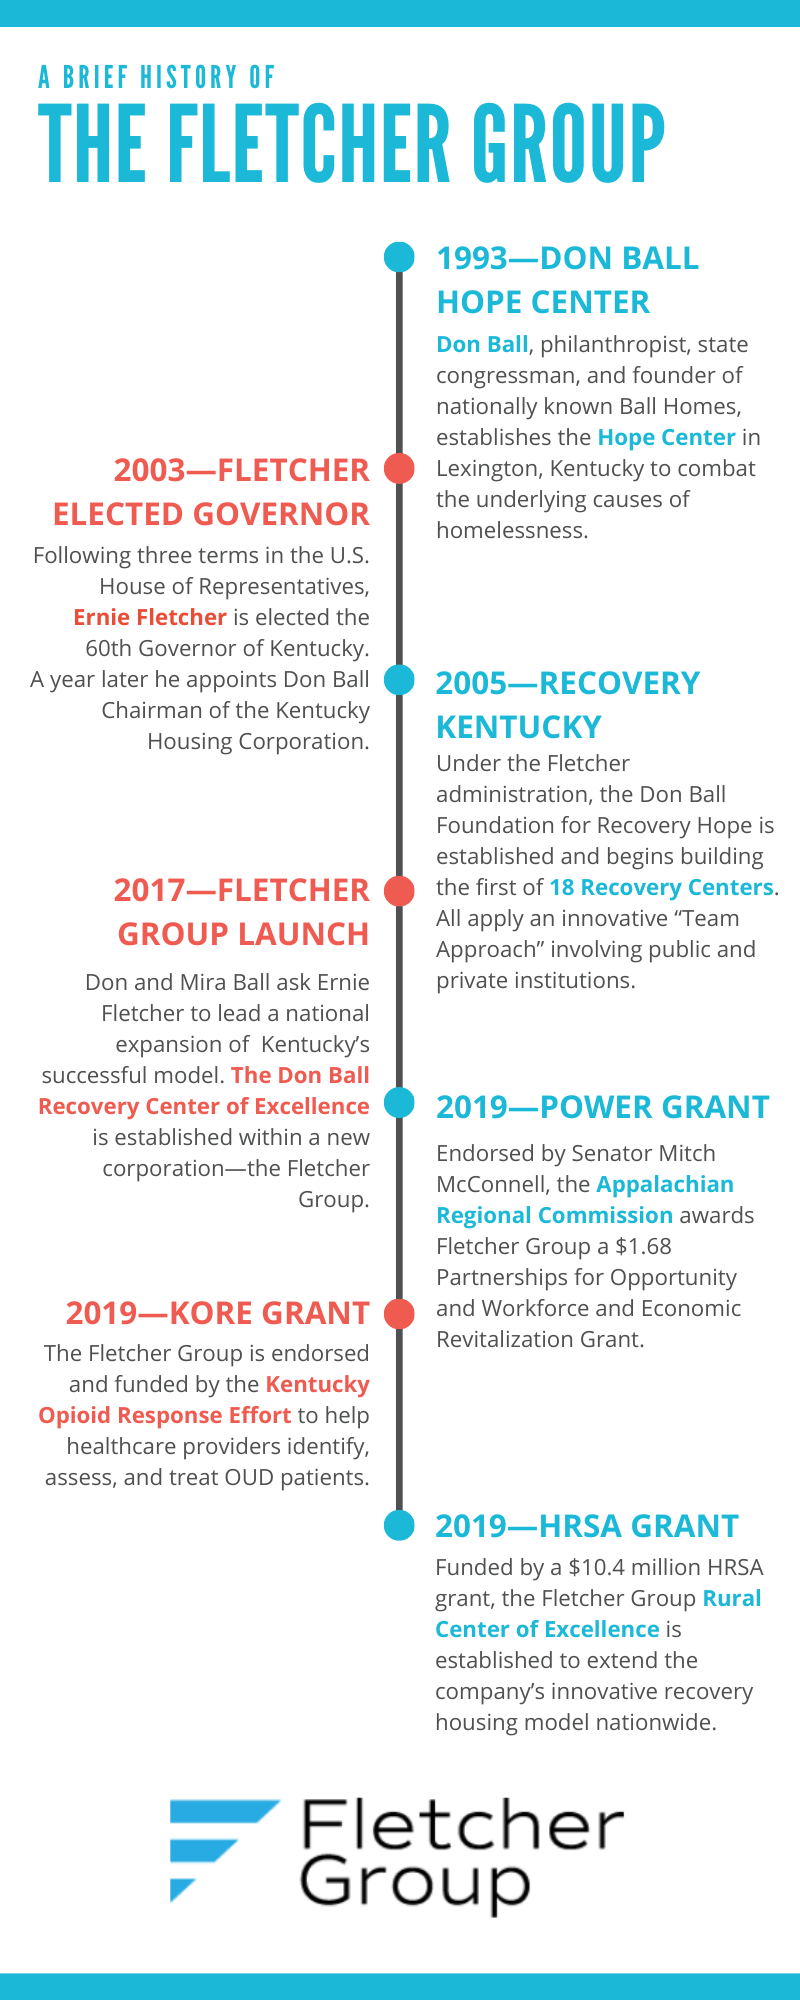 FLETCHER GROUP HISTORICAL TIMELINE